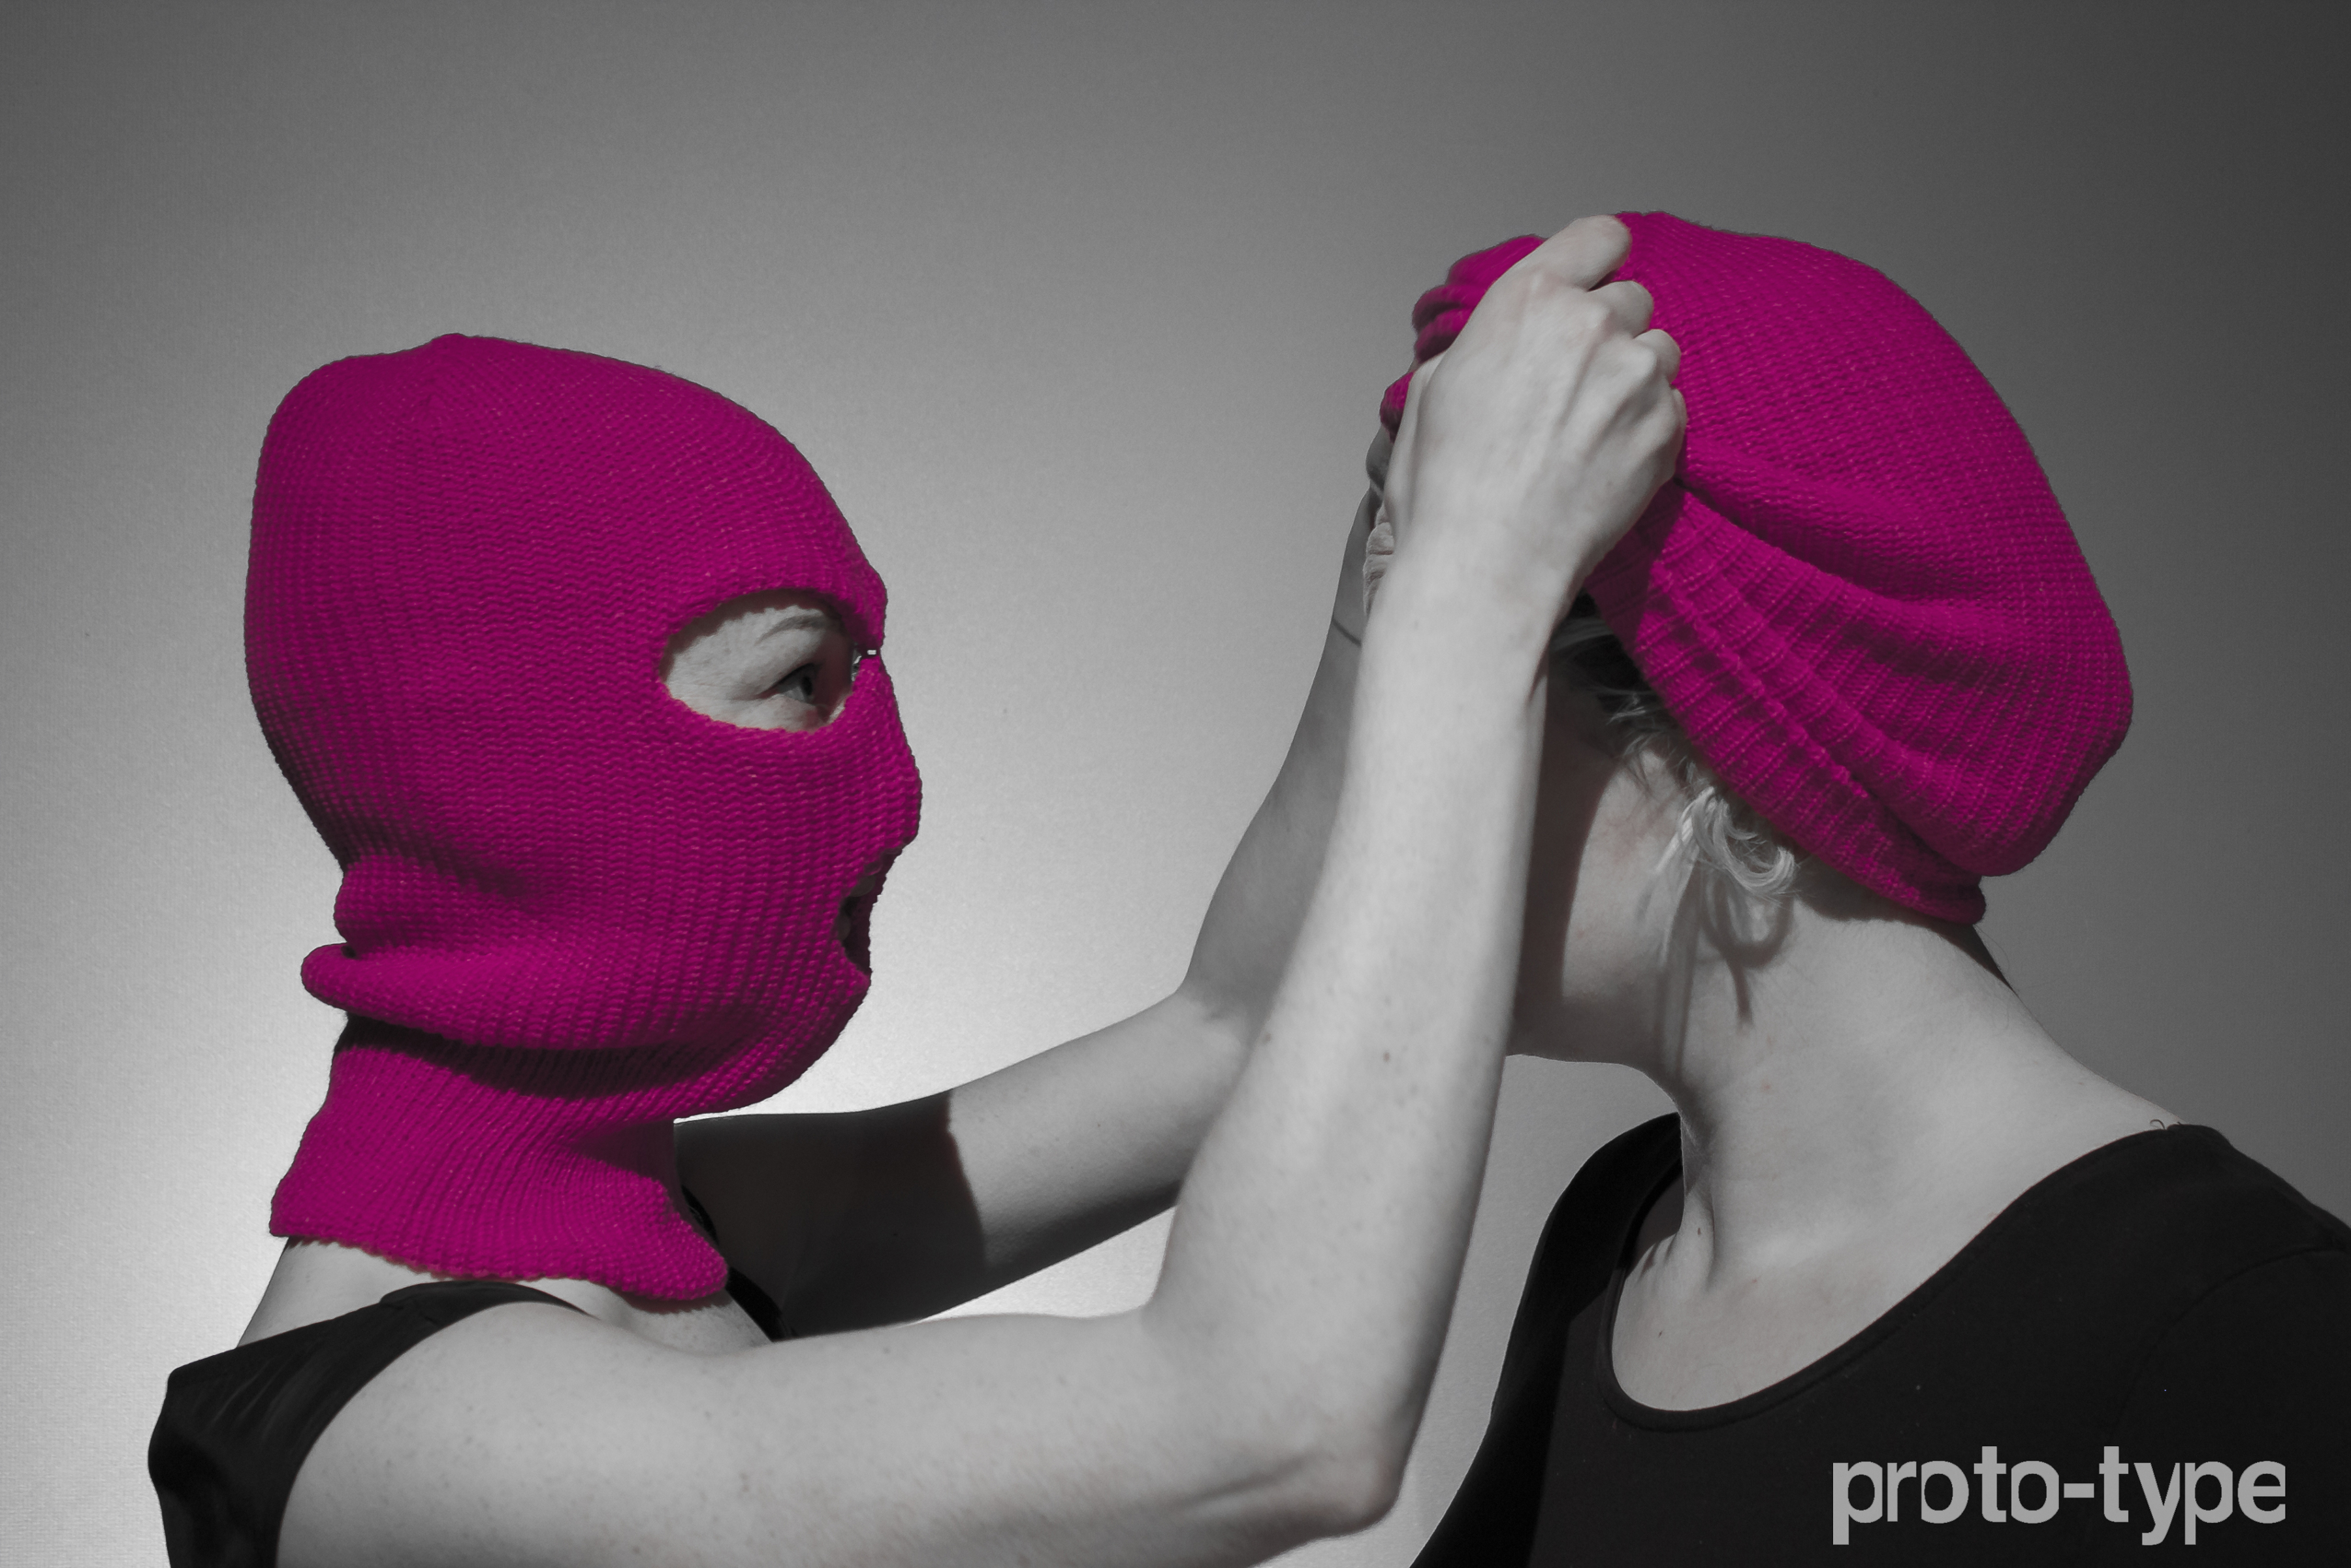 Main promo image for Proto-type Theater's 'A Machine they're Secretly Building'. Two women wearing hot pink balaclavas facing each other. It's not clear whether the balaclavas are being put on or taken off.